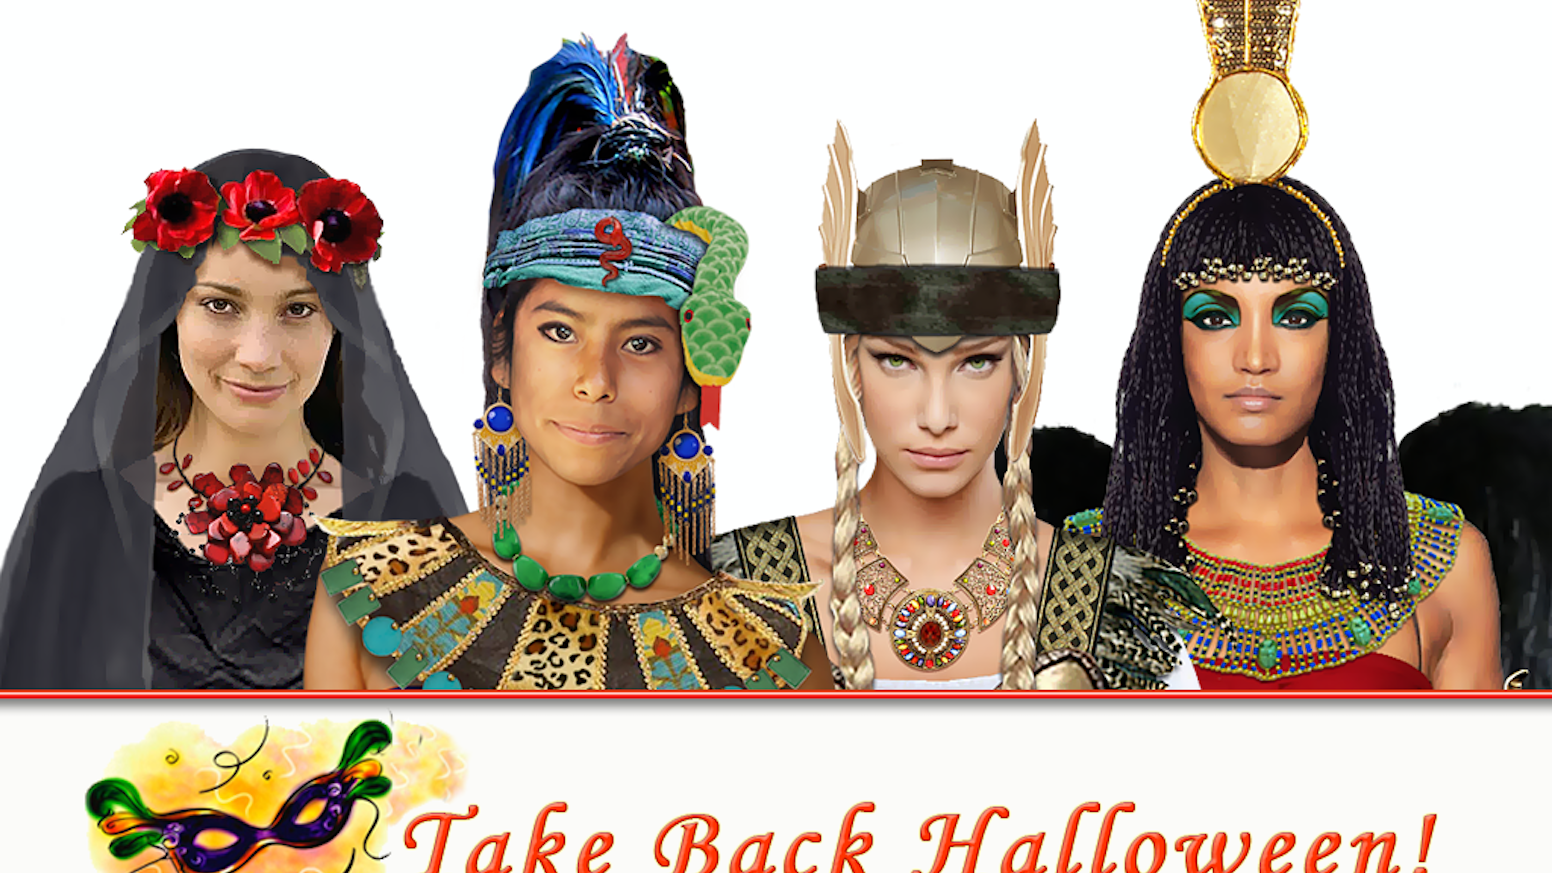 Take Back Halloween In 2013 By Suzanne Scoggins Kickstarter